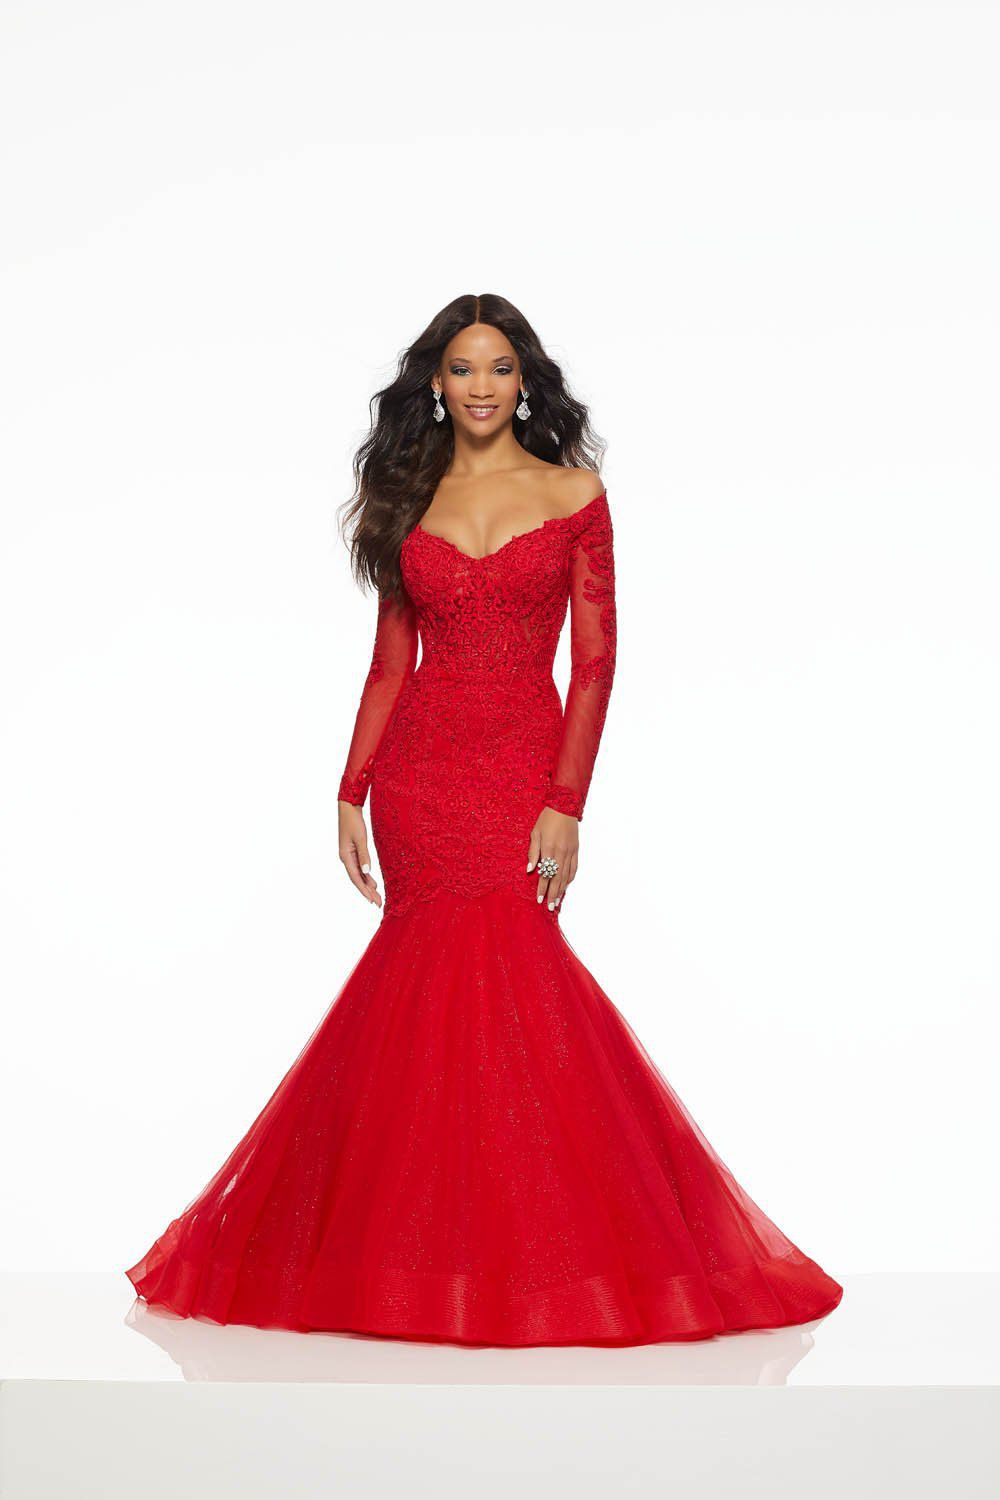 Style 43060 Mori Lee Red Size 12 Prom Long Sleeve Pageant Tall Height Mermaid Dress on Queenly